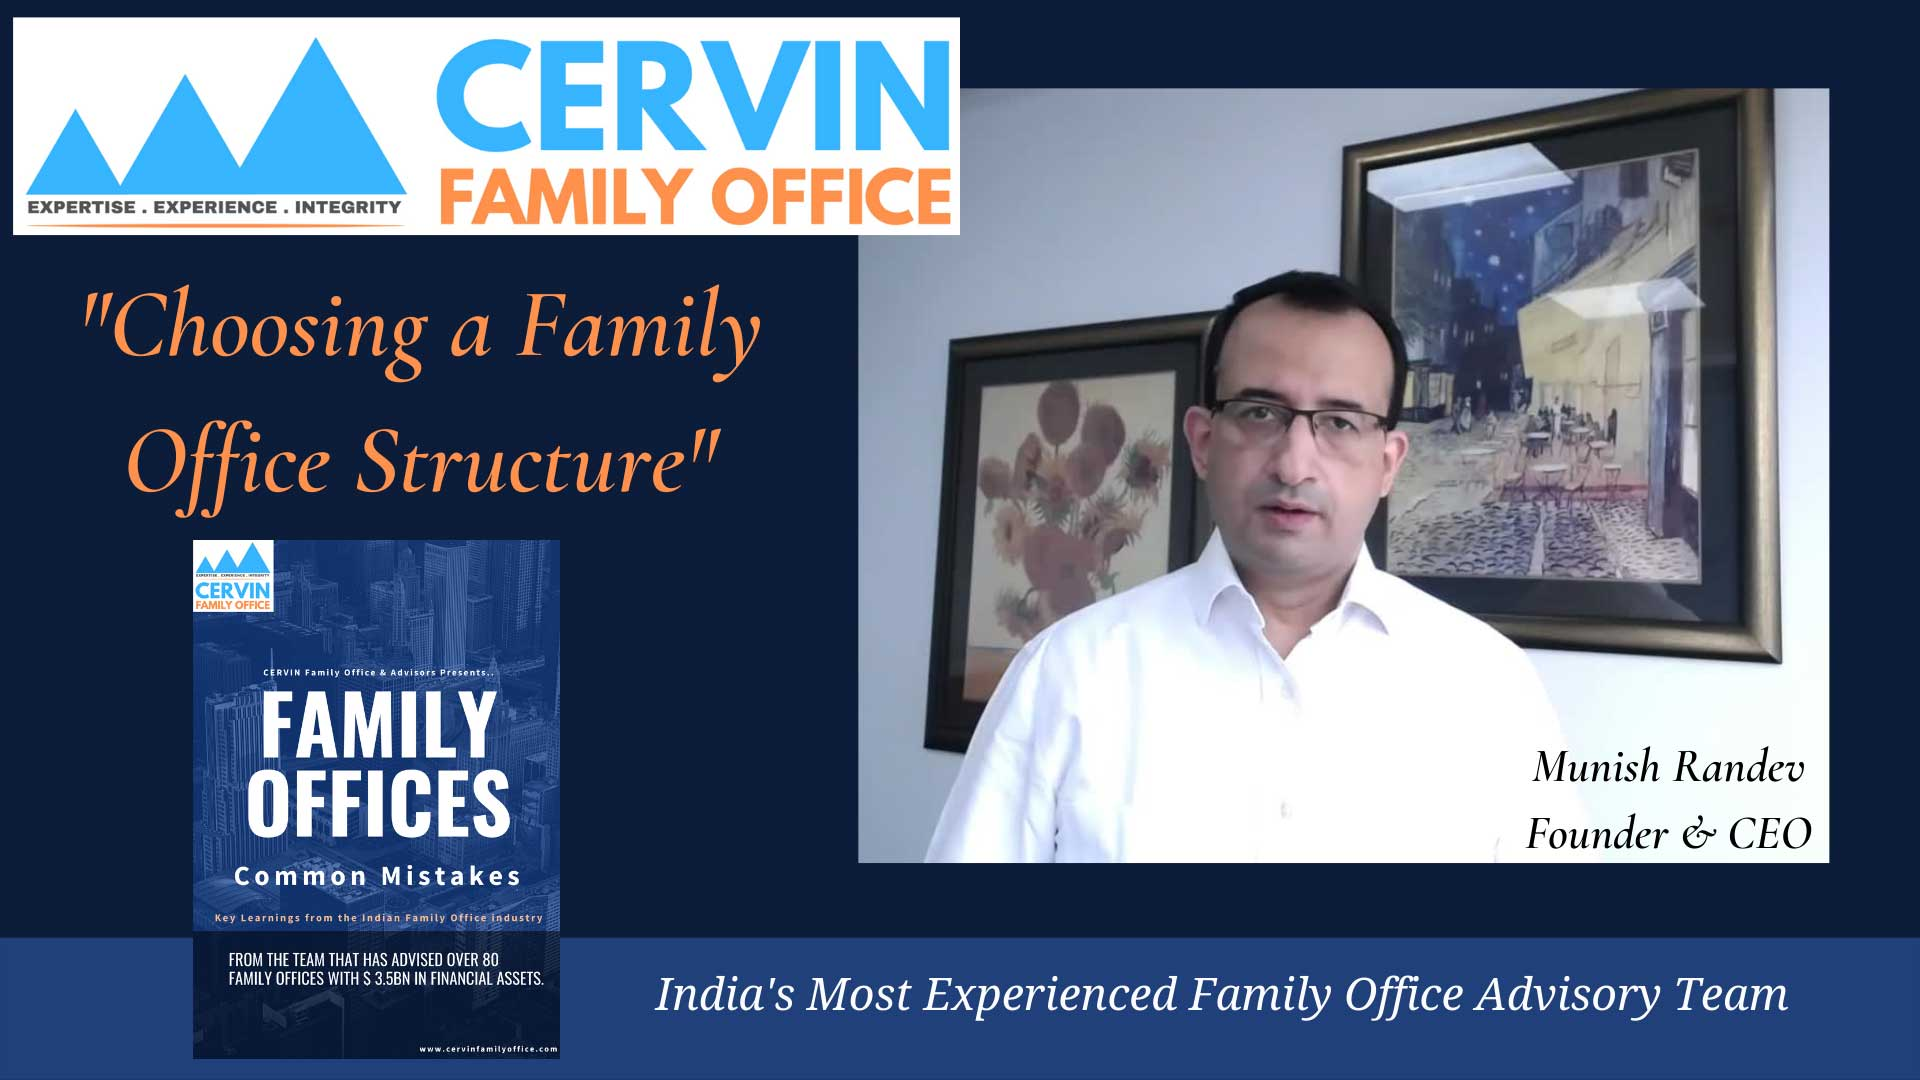 https://www.cervinfamilyoffice.com/wp-content/uploads/2021/10/family-office-common-mistakes.jpg